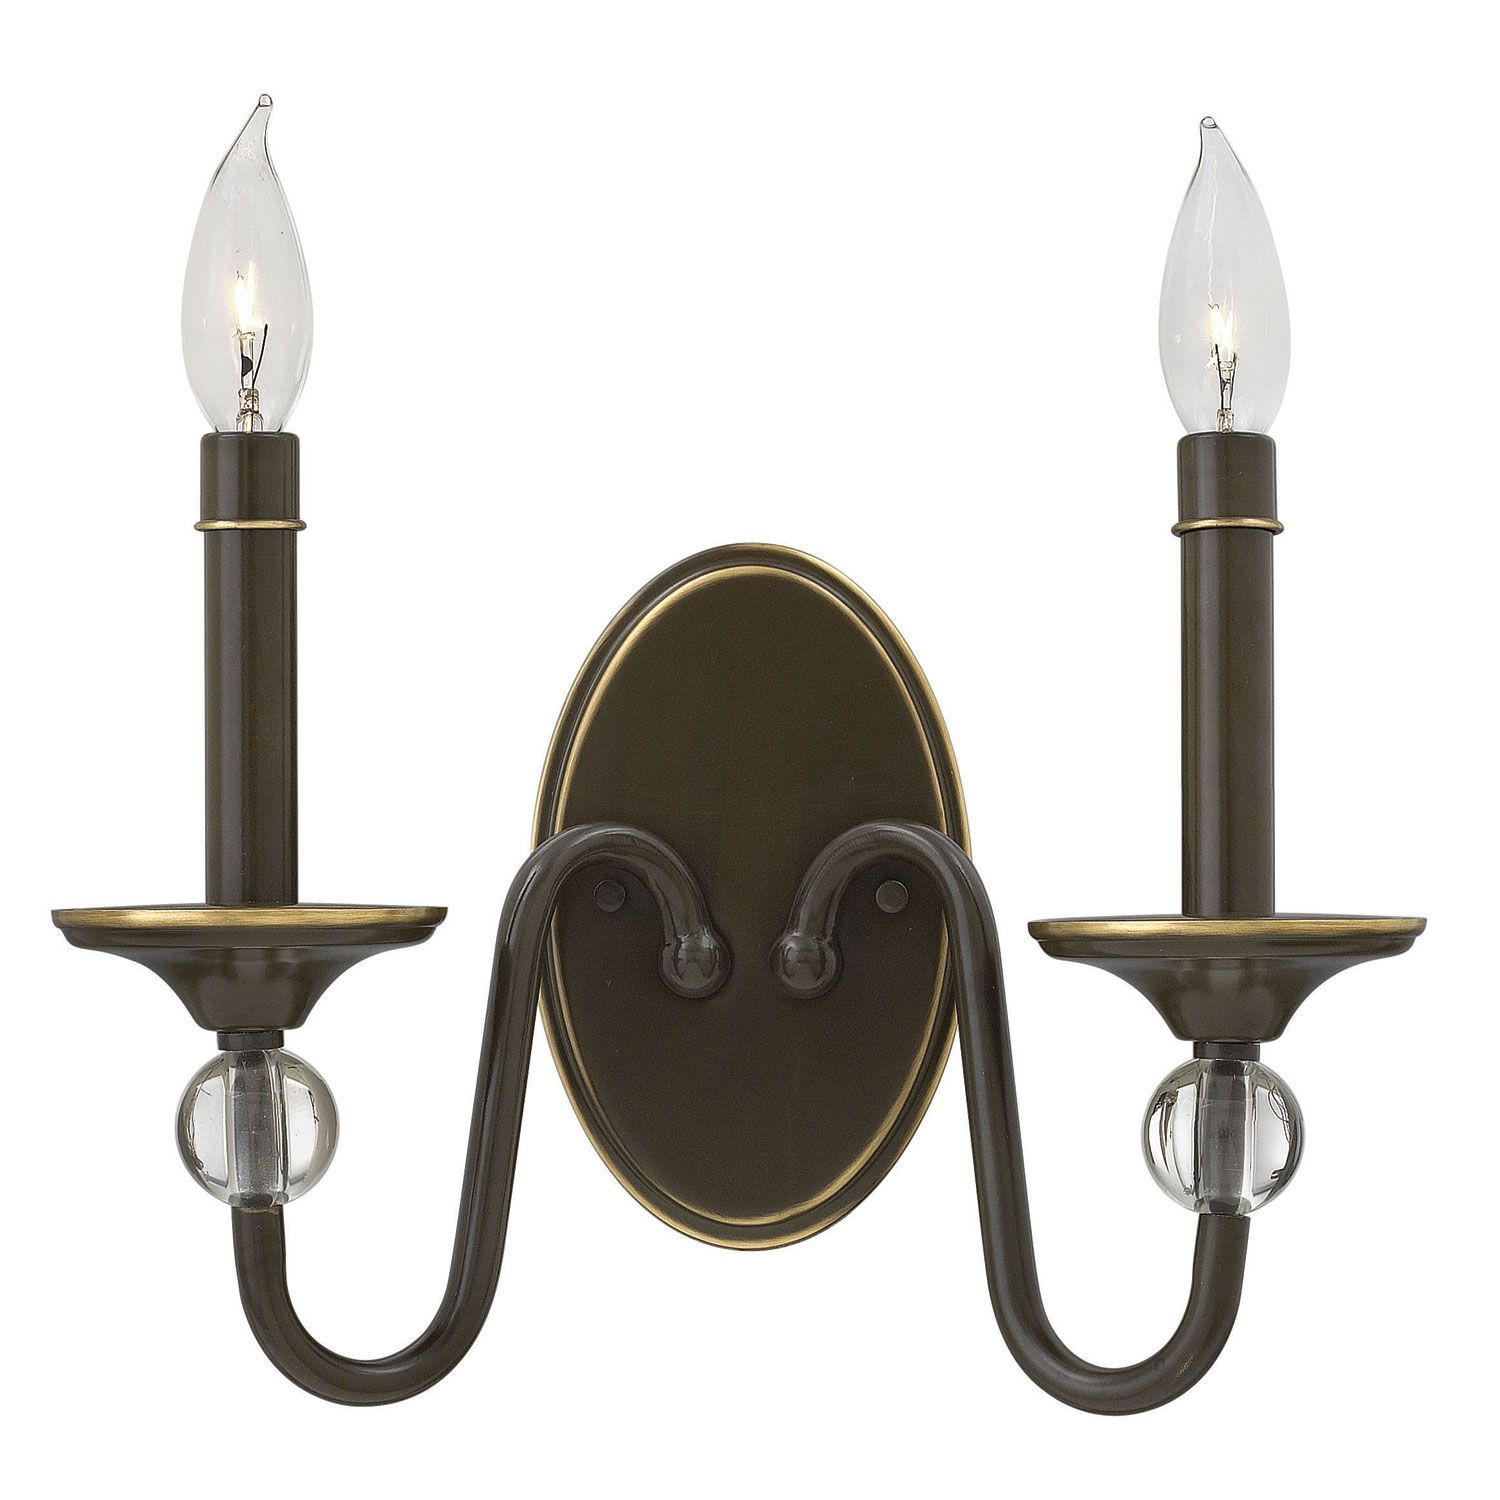 Hinkley eleanor light oiled bronze two light wall sconce light eleanor light oiled bronze two light wall sconce hinkley 2 light armed candle wall sconces aloadofball